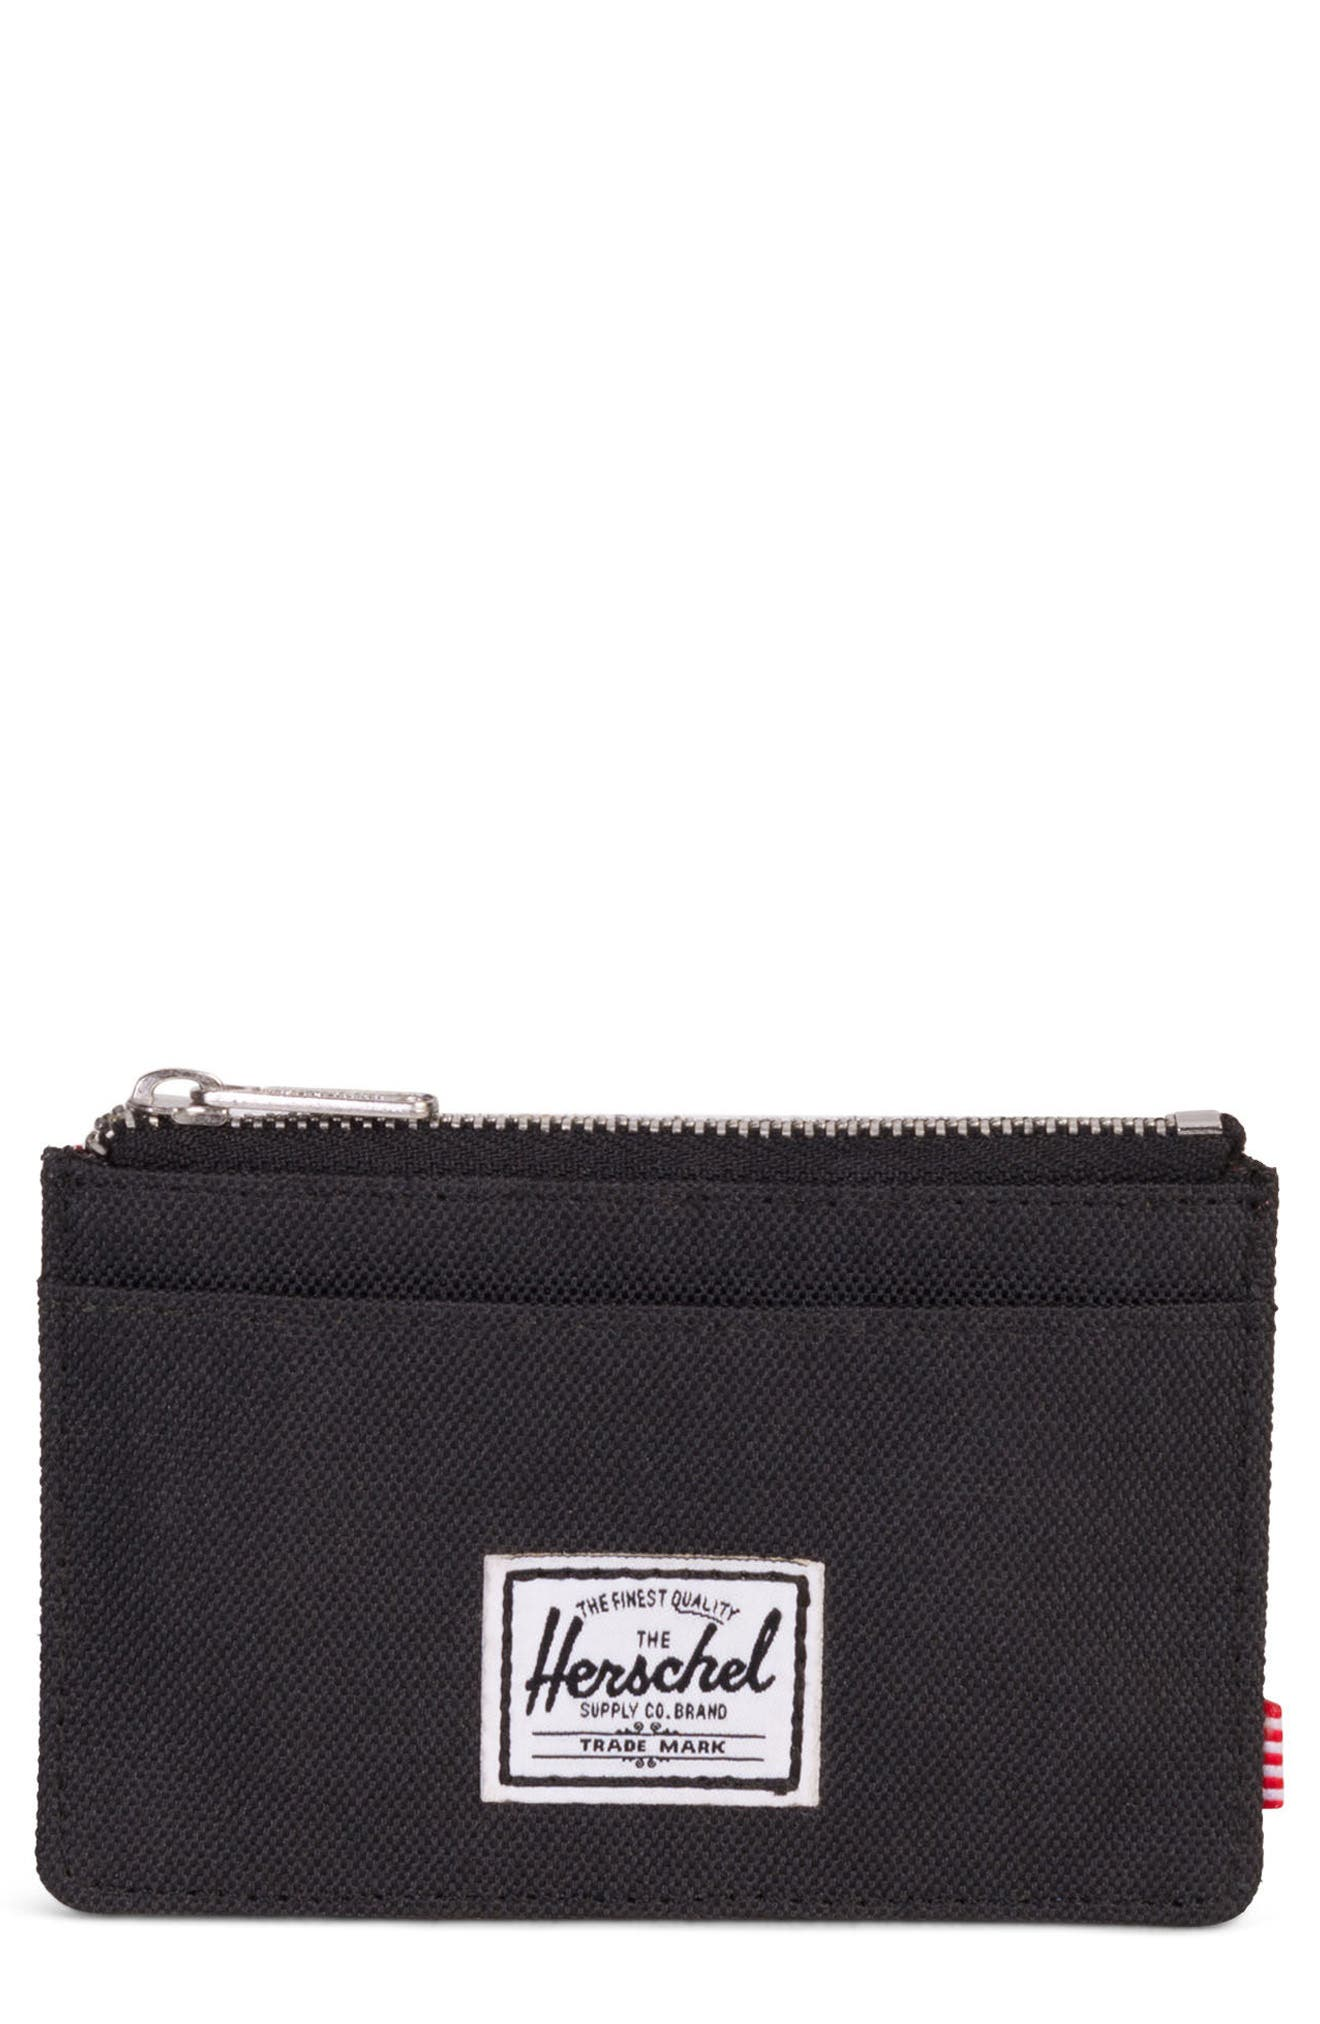 Oscar Card Case,                             Main thumbnail 1, color,                             BLACK